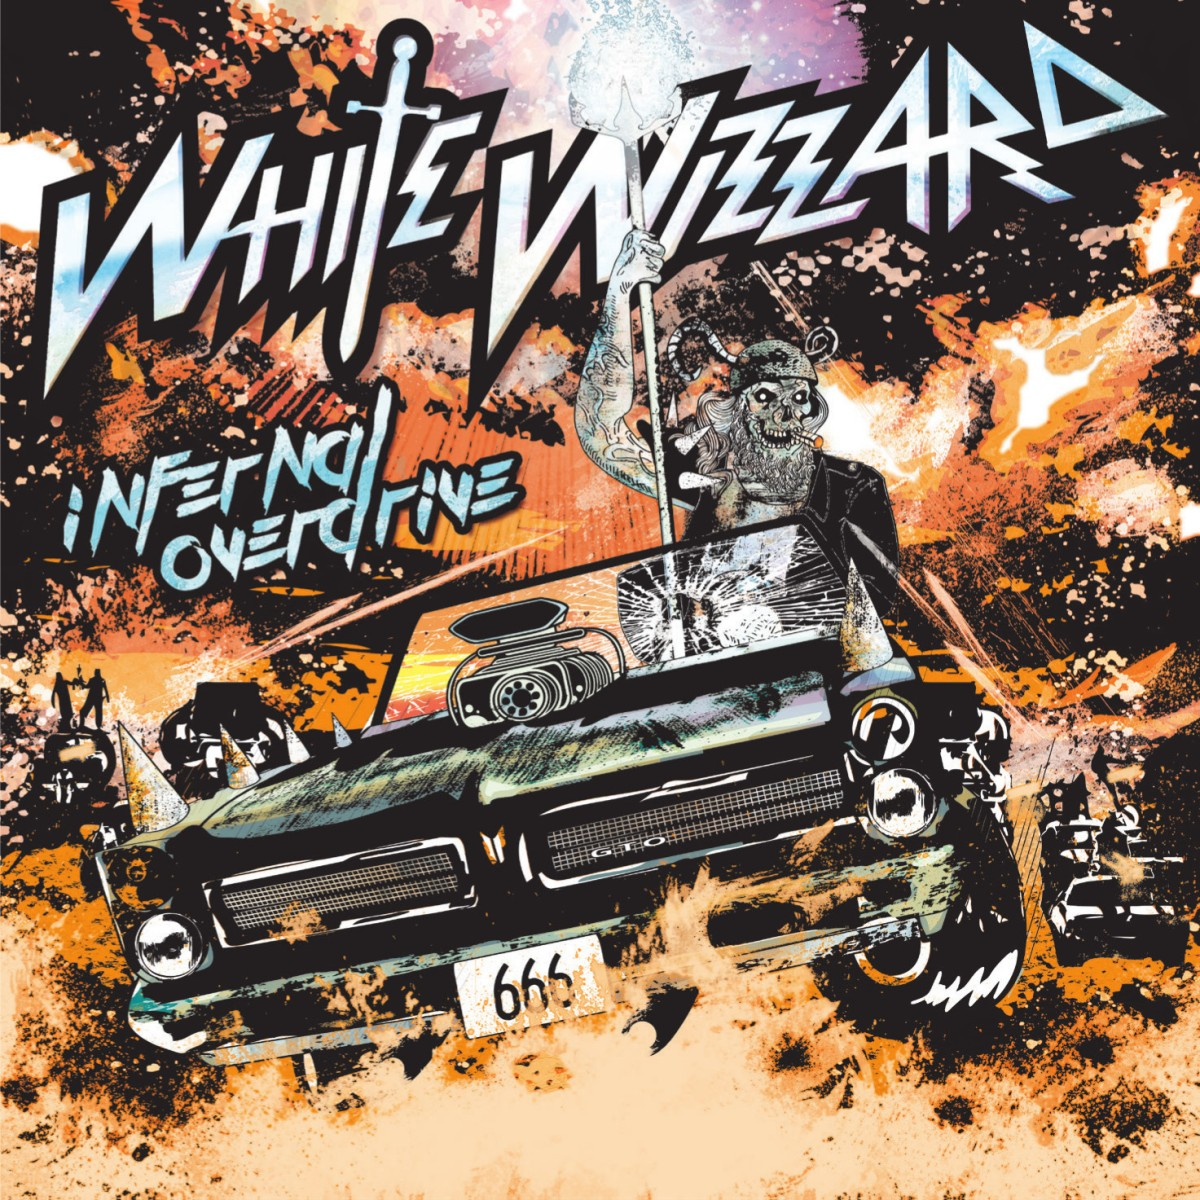 Band Interview: White Wizzard's Jon Leon